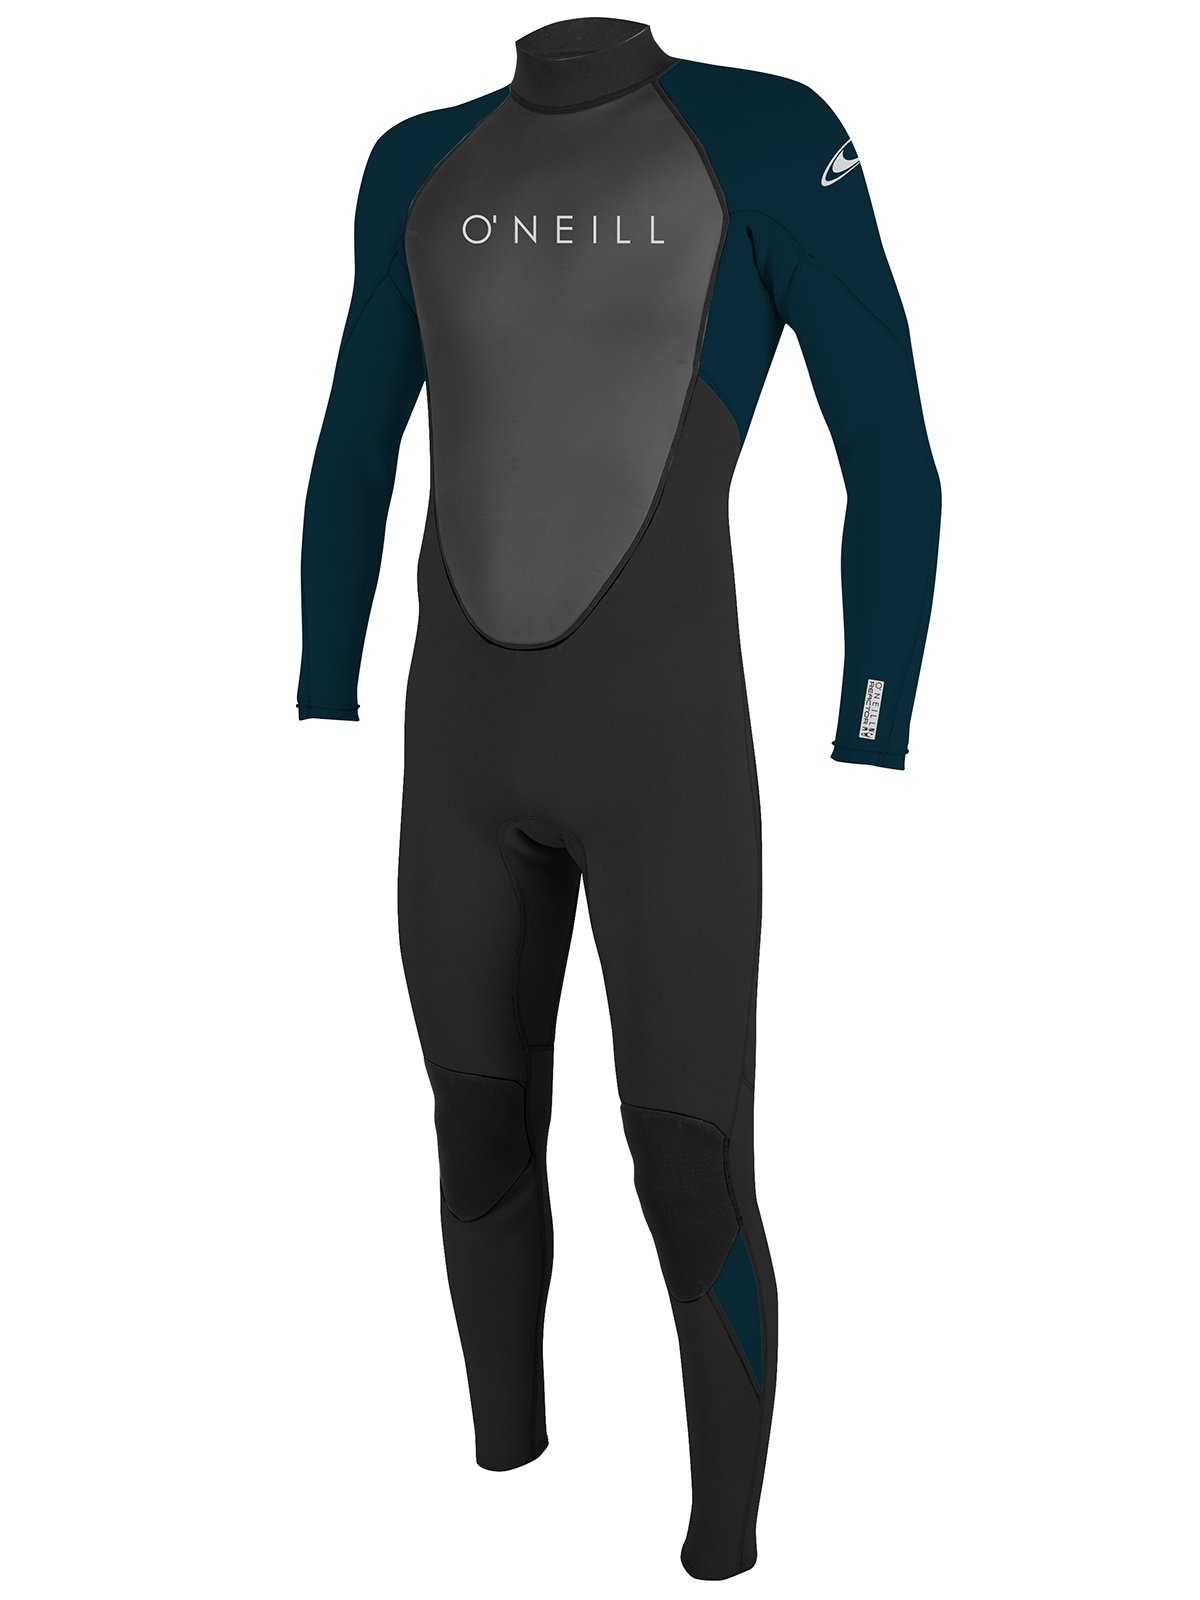 O'Neill Reactor 2 Men's 3/2mm Full Wetsuit 4XL-Short Black/slate (5283IS)